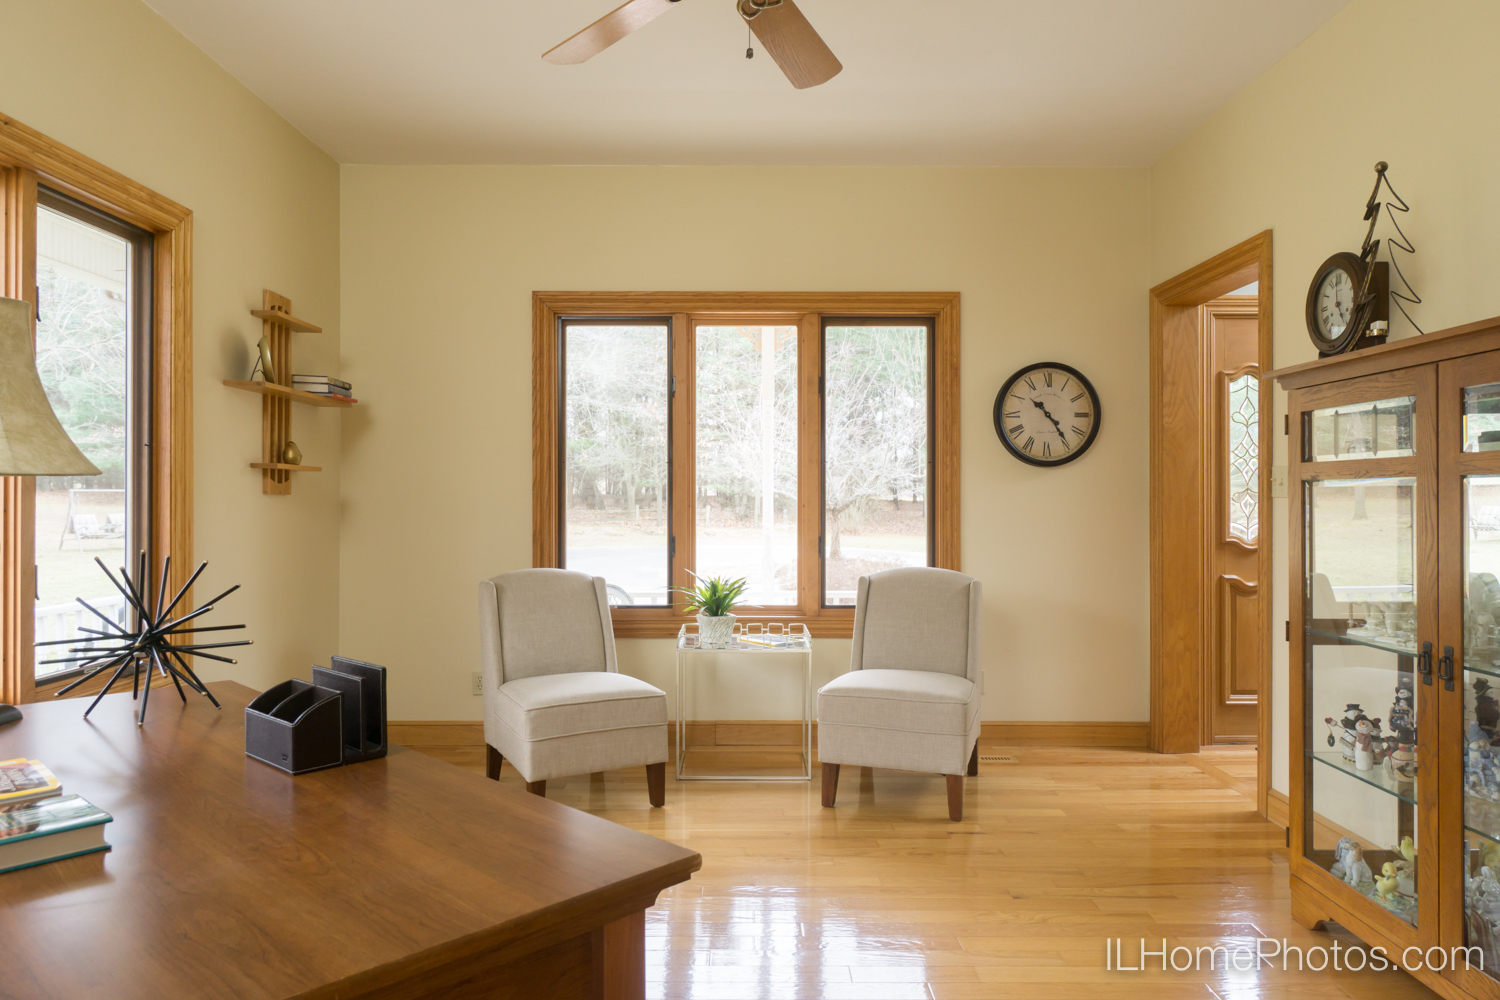 Interior home office photograph for real estate :: Illinois Home Photography by Michael Gowin, Lincoln, IL